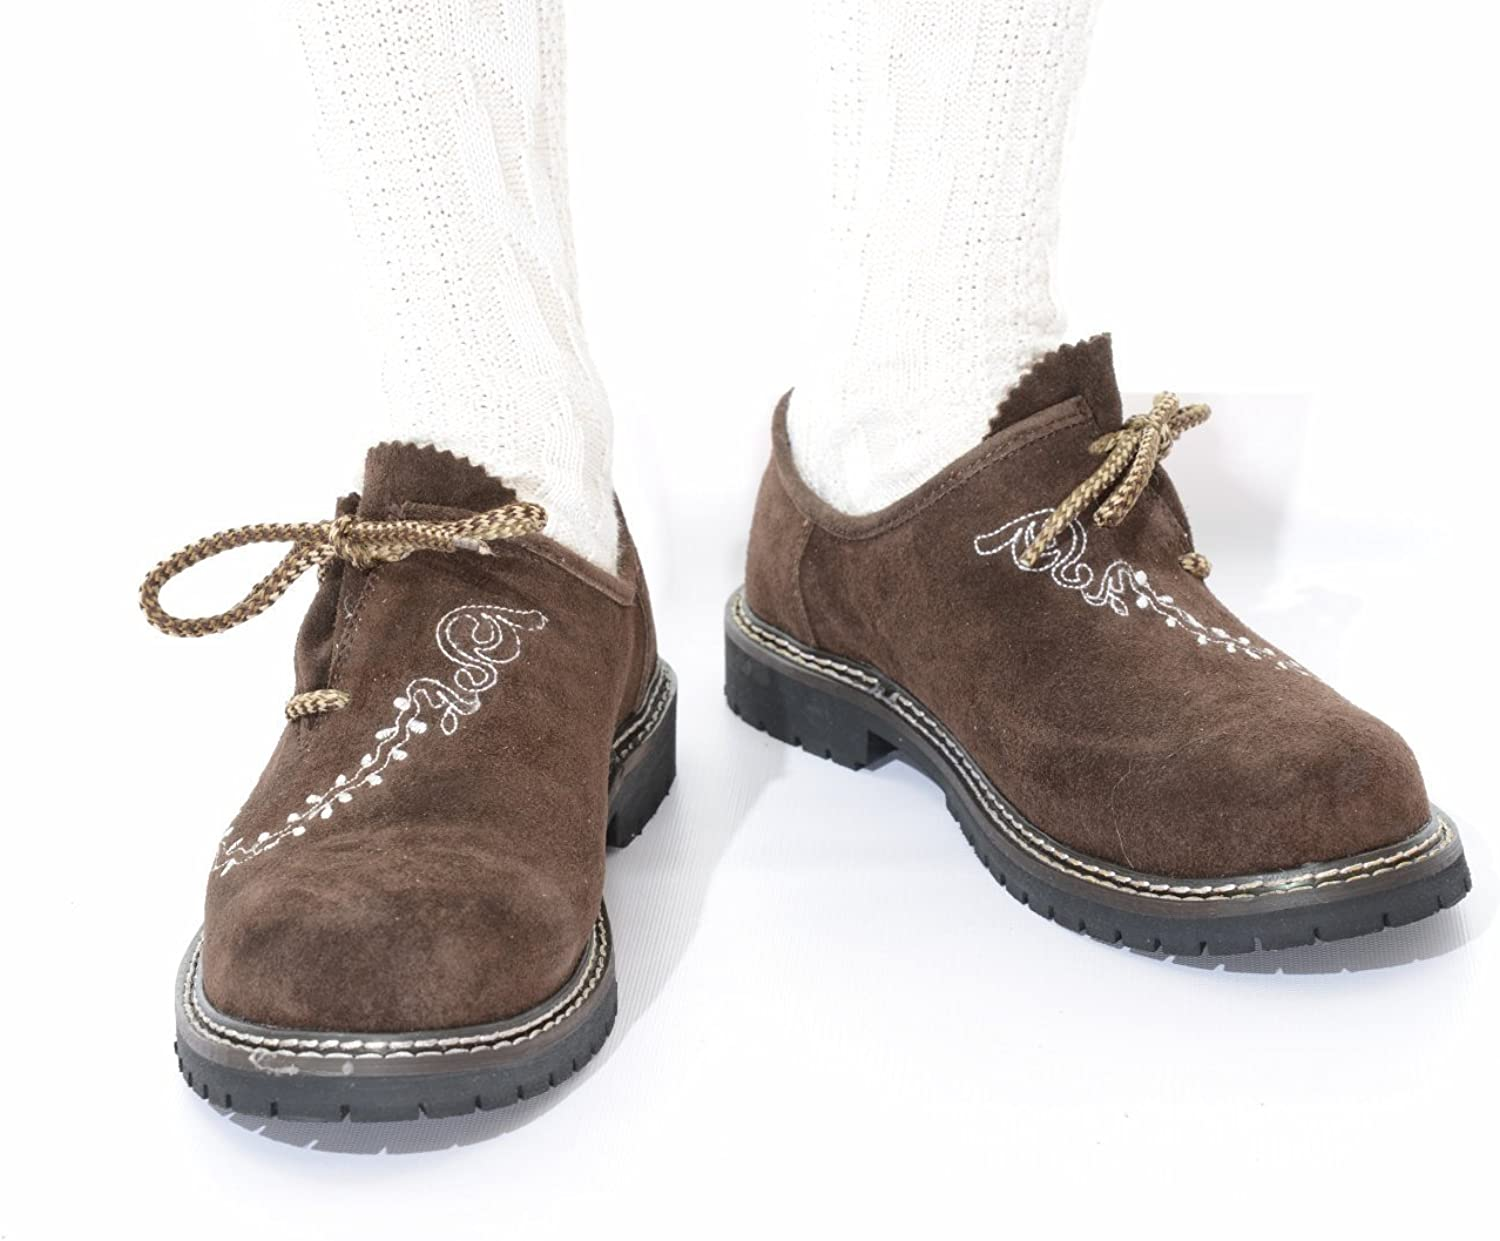 Lederhosen Shoes, Haferl Shoes, Trachten Shoes in dark brown wembroidery